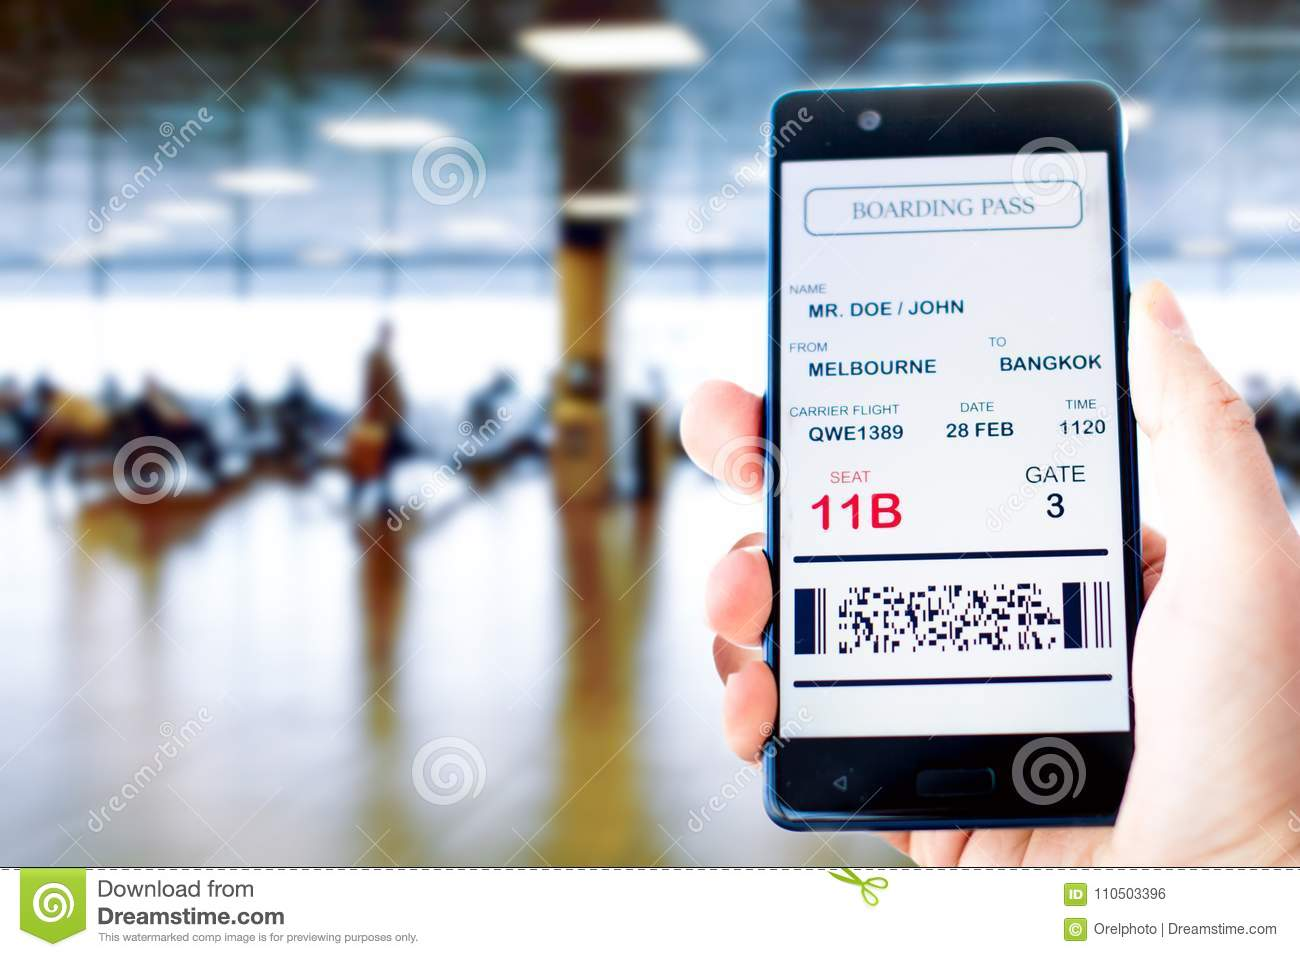 carte d embarquement sur mobile Mobile Phone With Mobile Boarding Pass Stock Photo   Image of